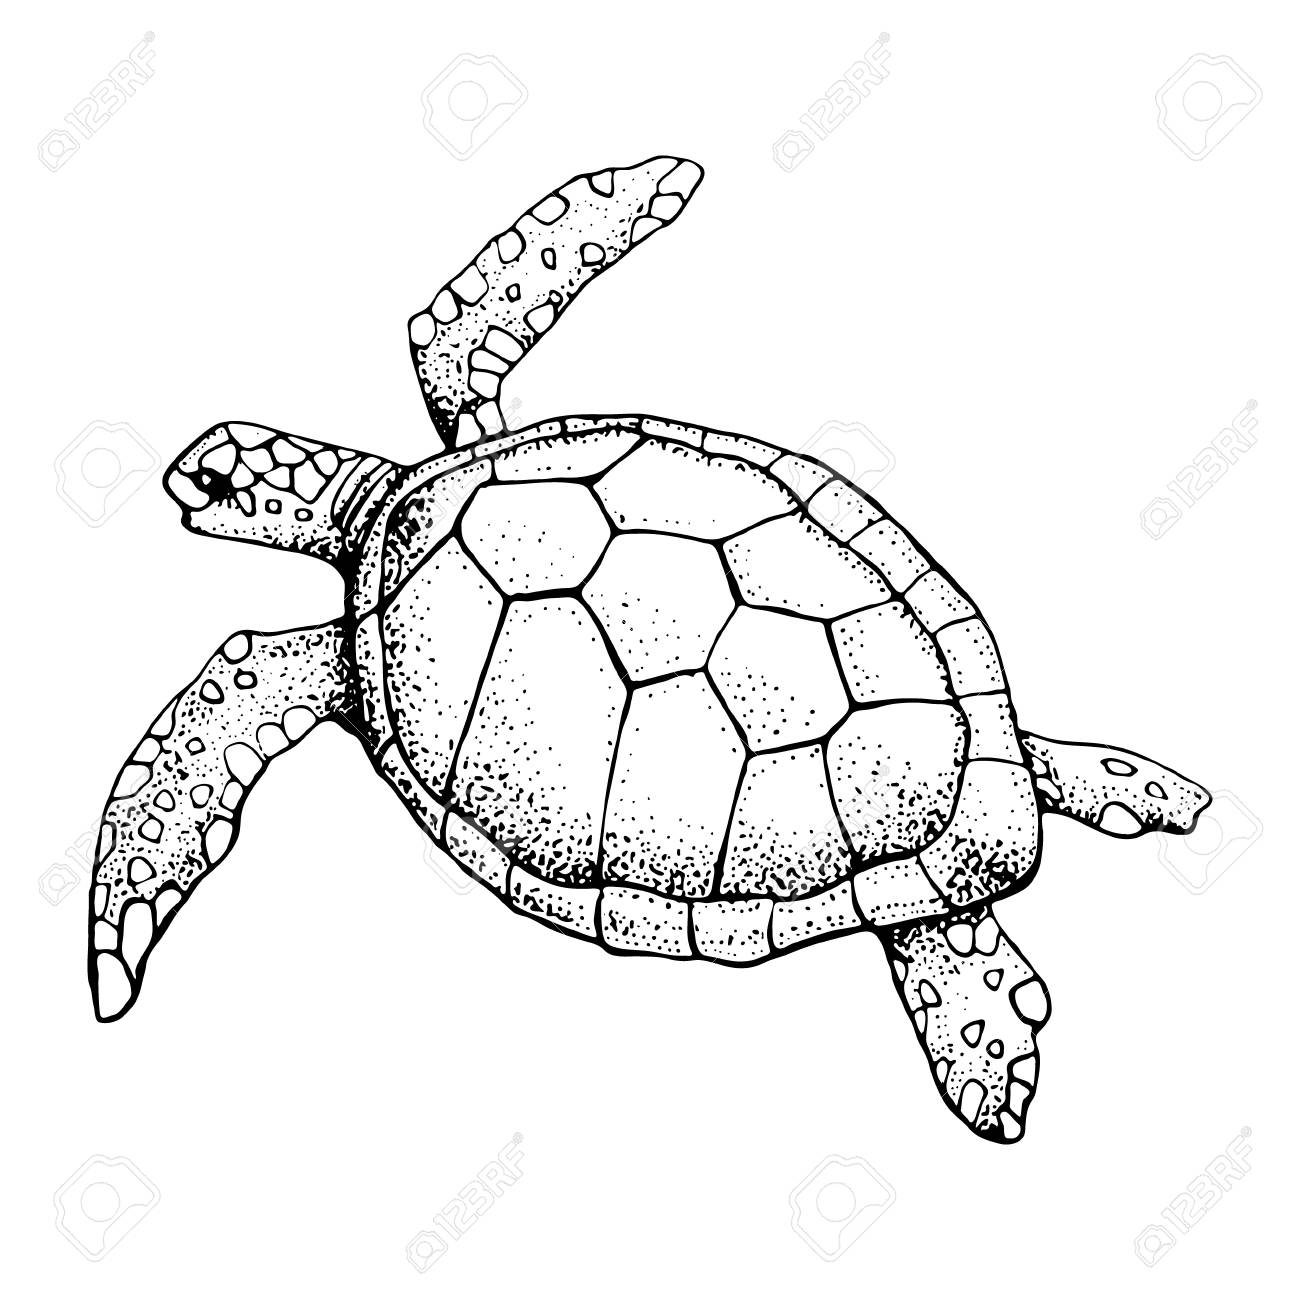 Hand Drawn Sea Turtle Isolated On A White Background Royalty Free Cliparts Vectors And Stock Illustration Image 122482767